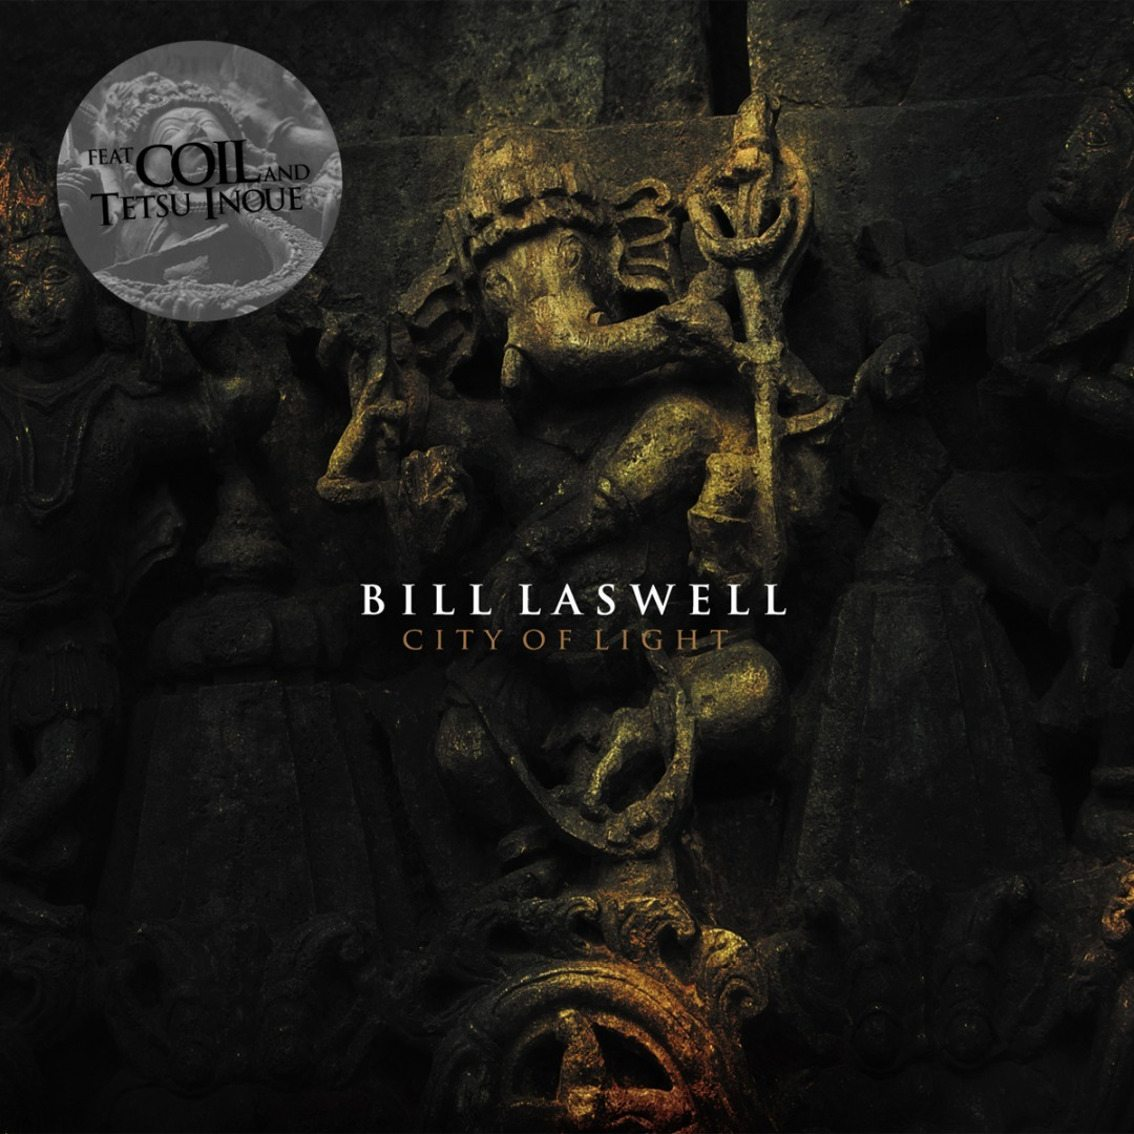 Re-release for Coil / Bill Laswell album'City Of Light'